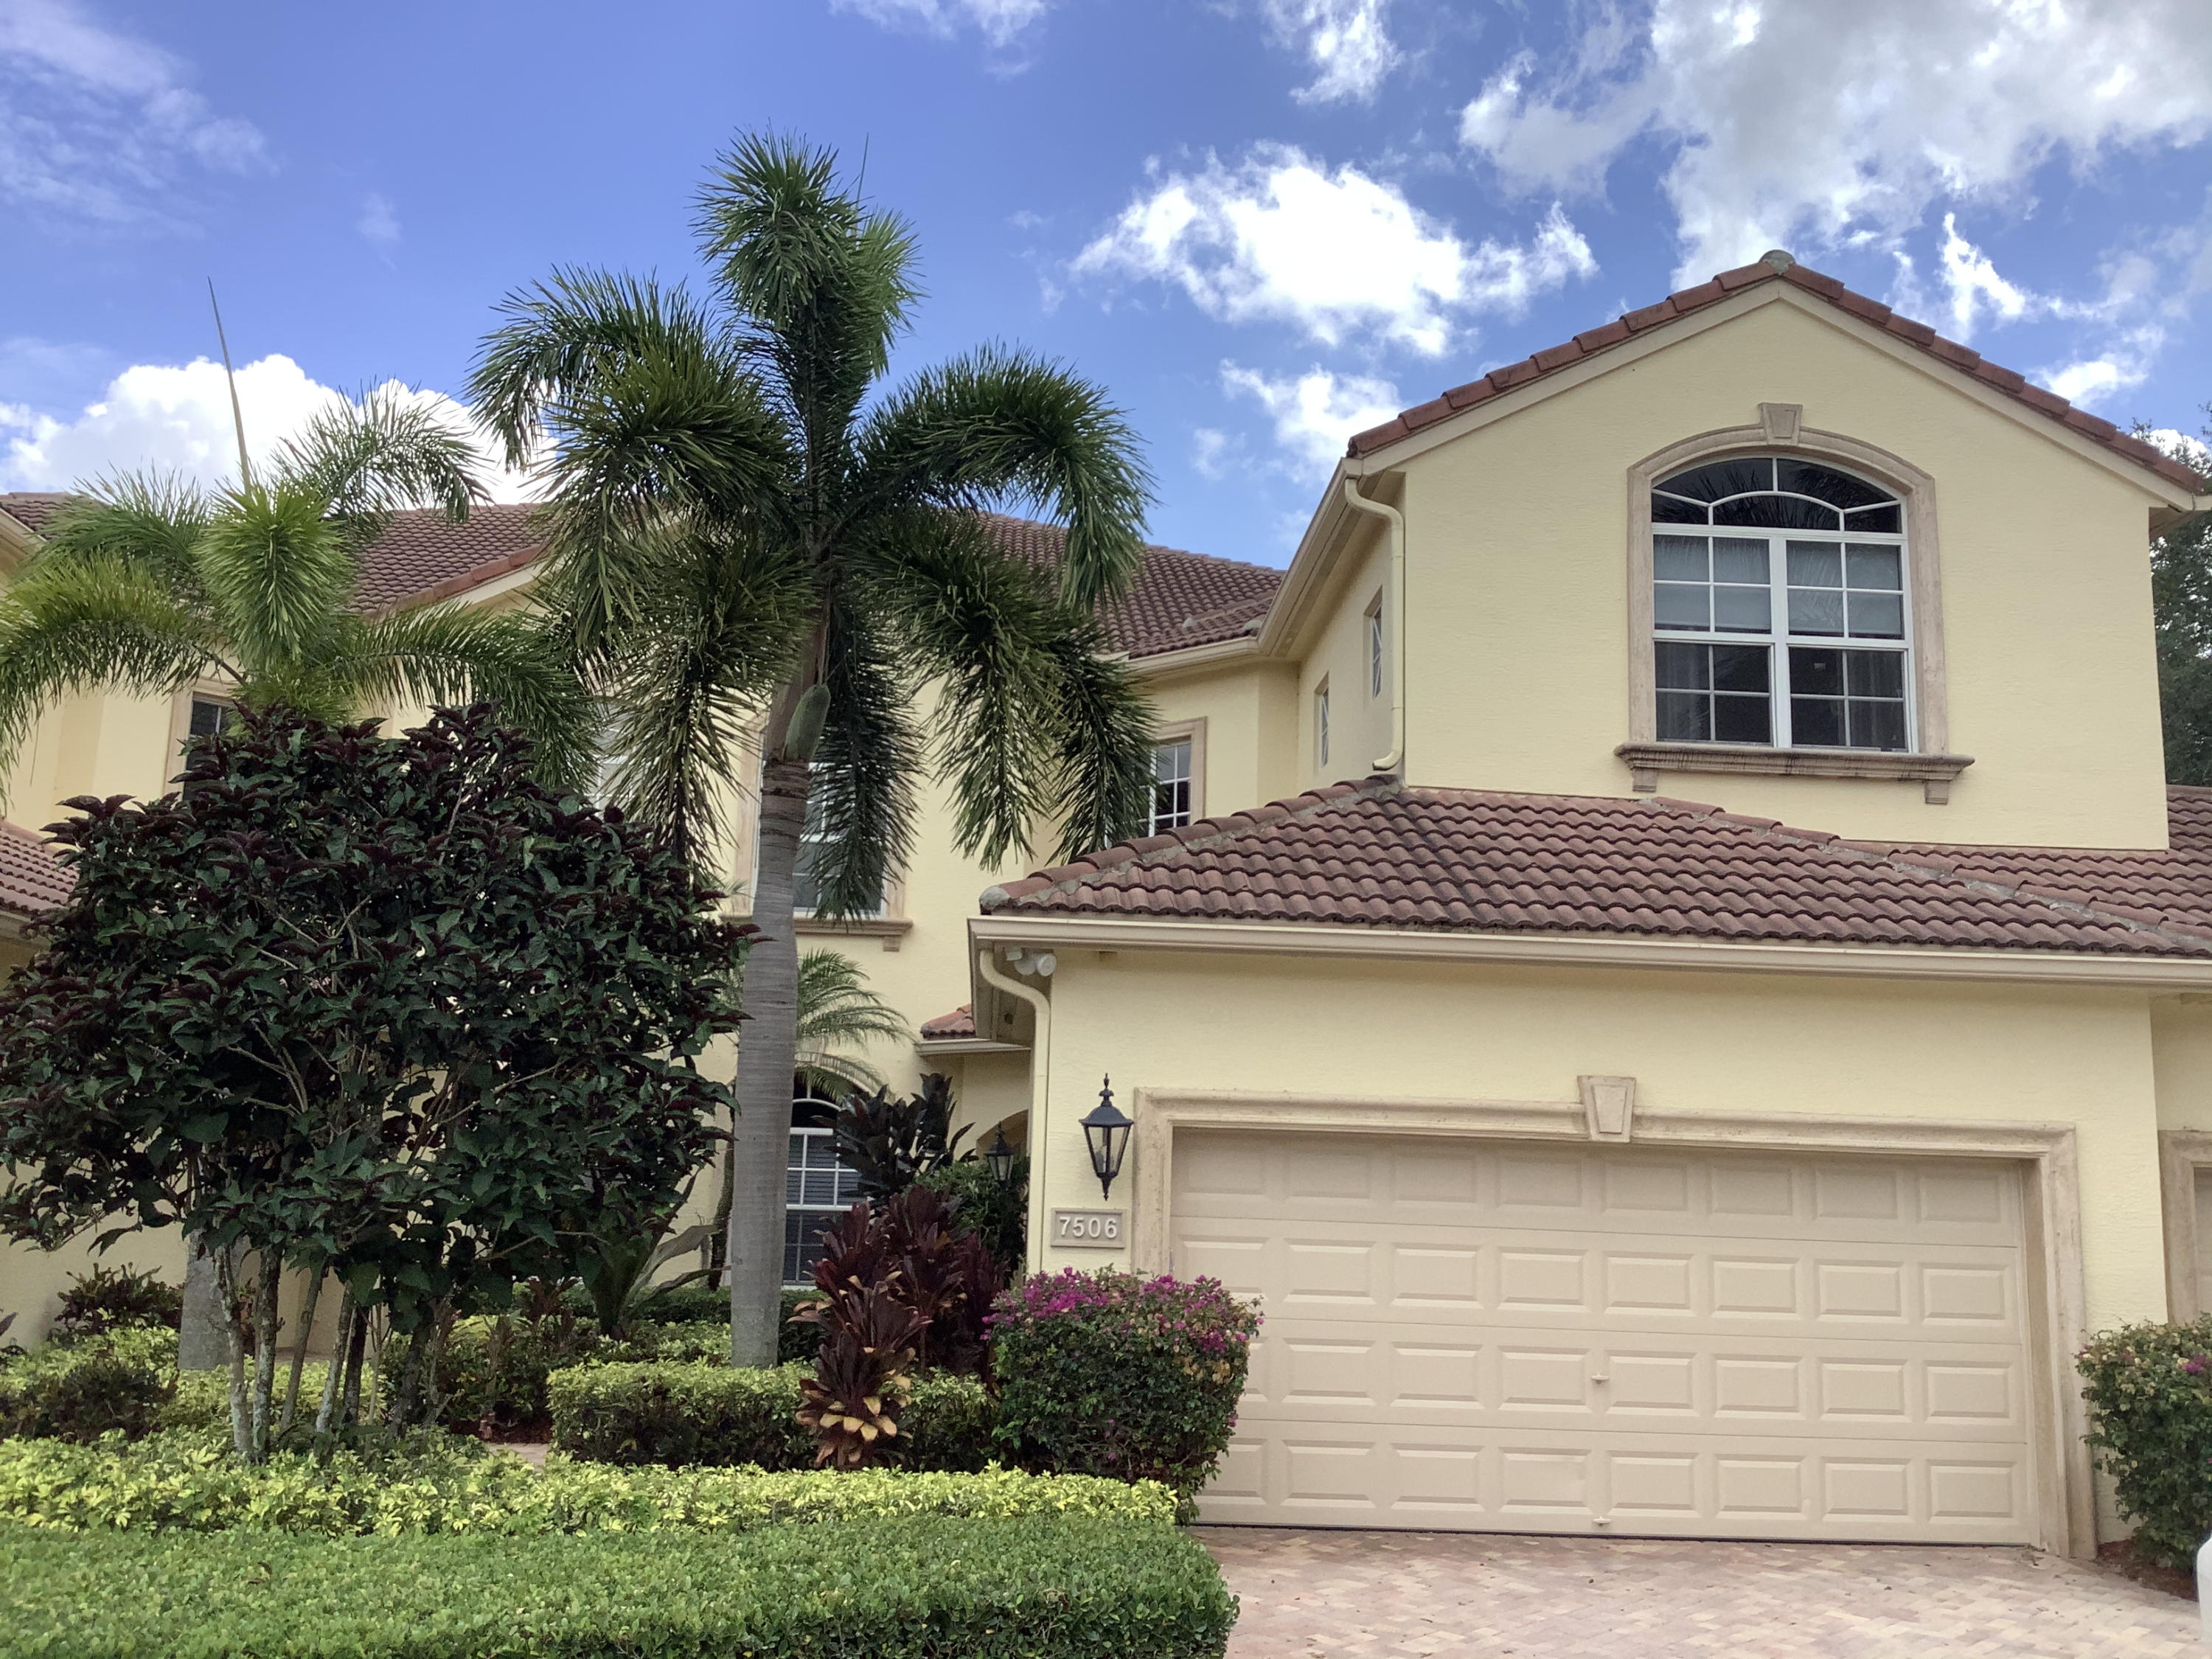 7506  Orchid Hammock Drive  For Sale 10716547, FL